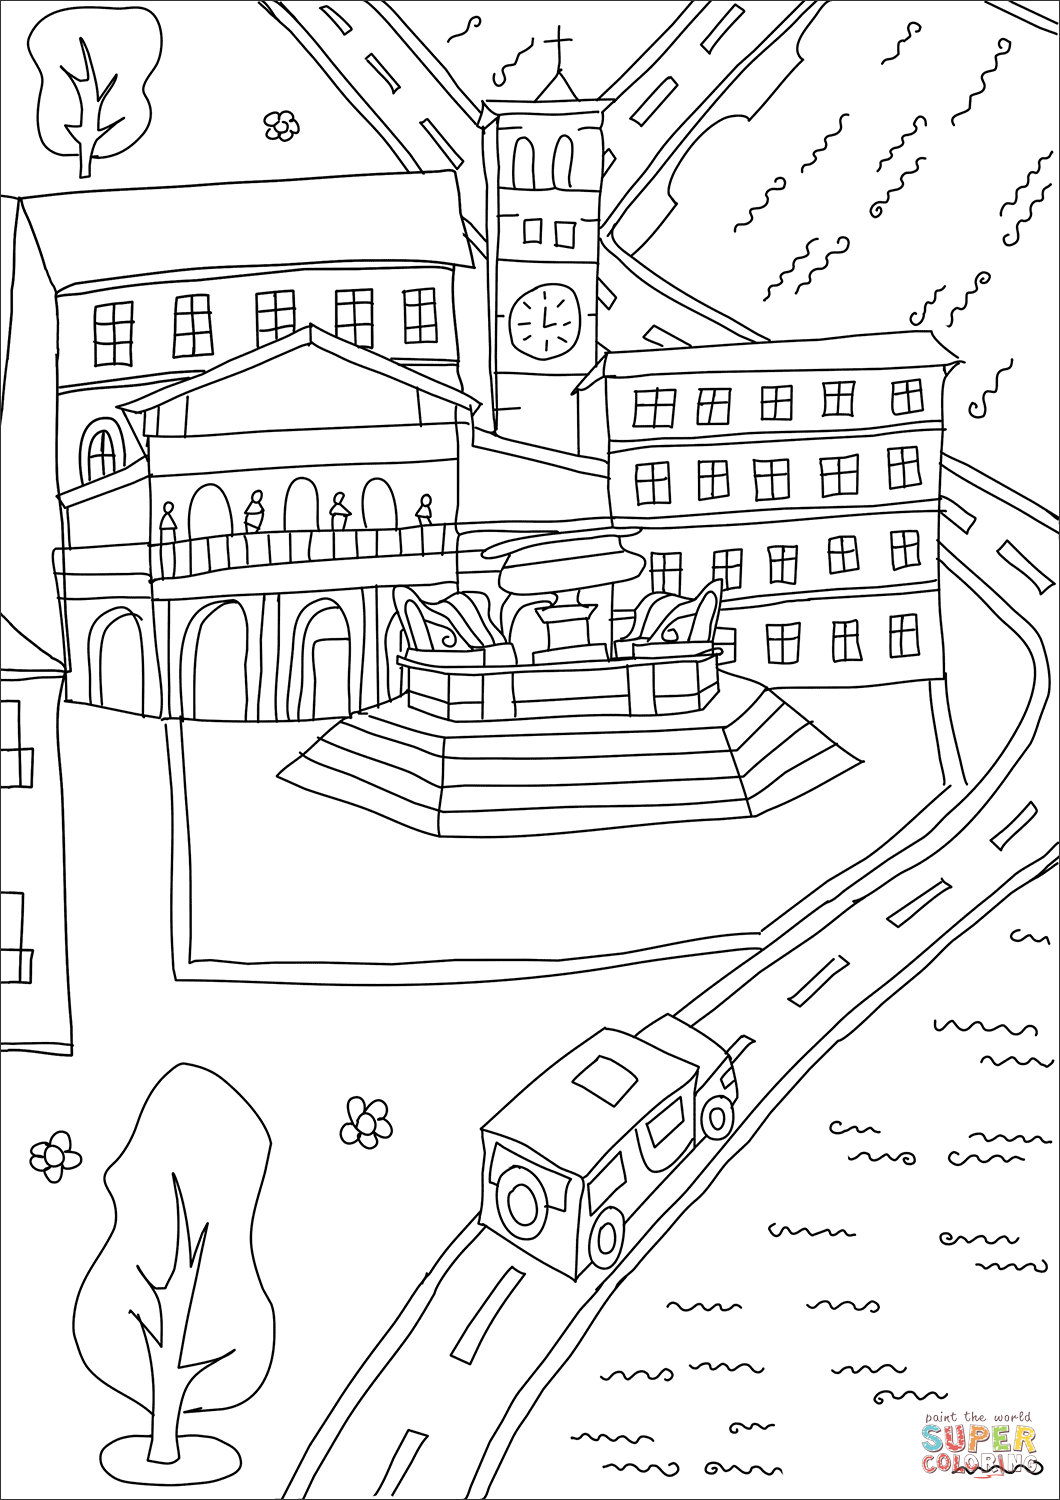 Santa Maria Coloring Page With Basilica Of In Trastevere Free Printable